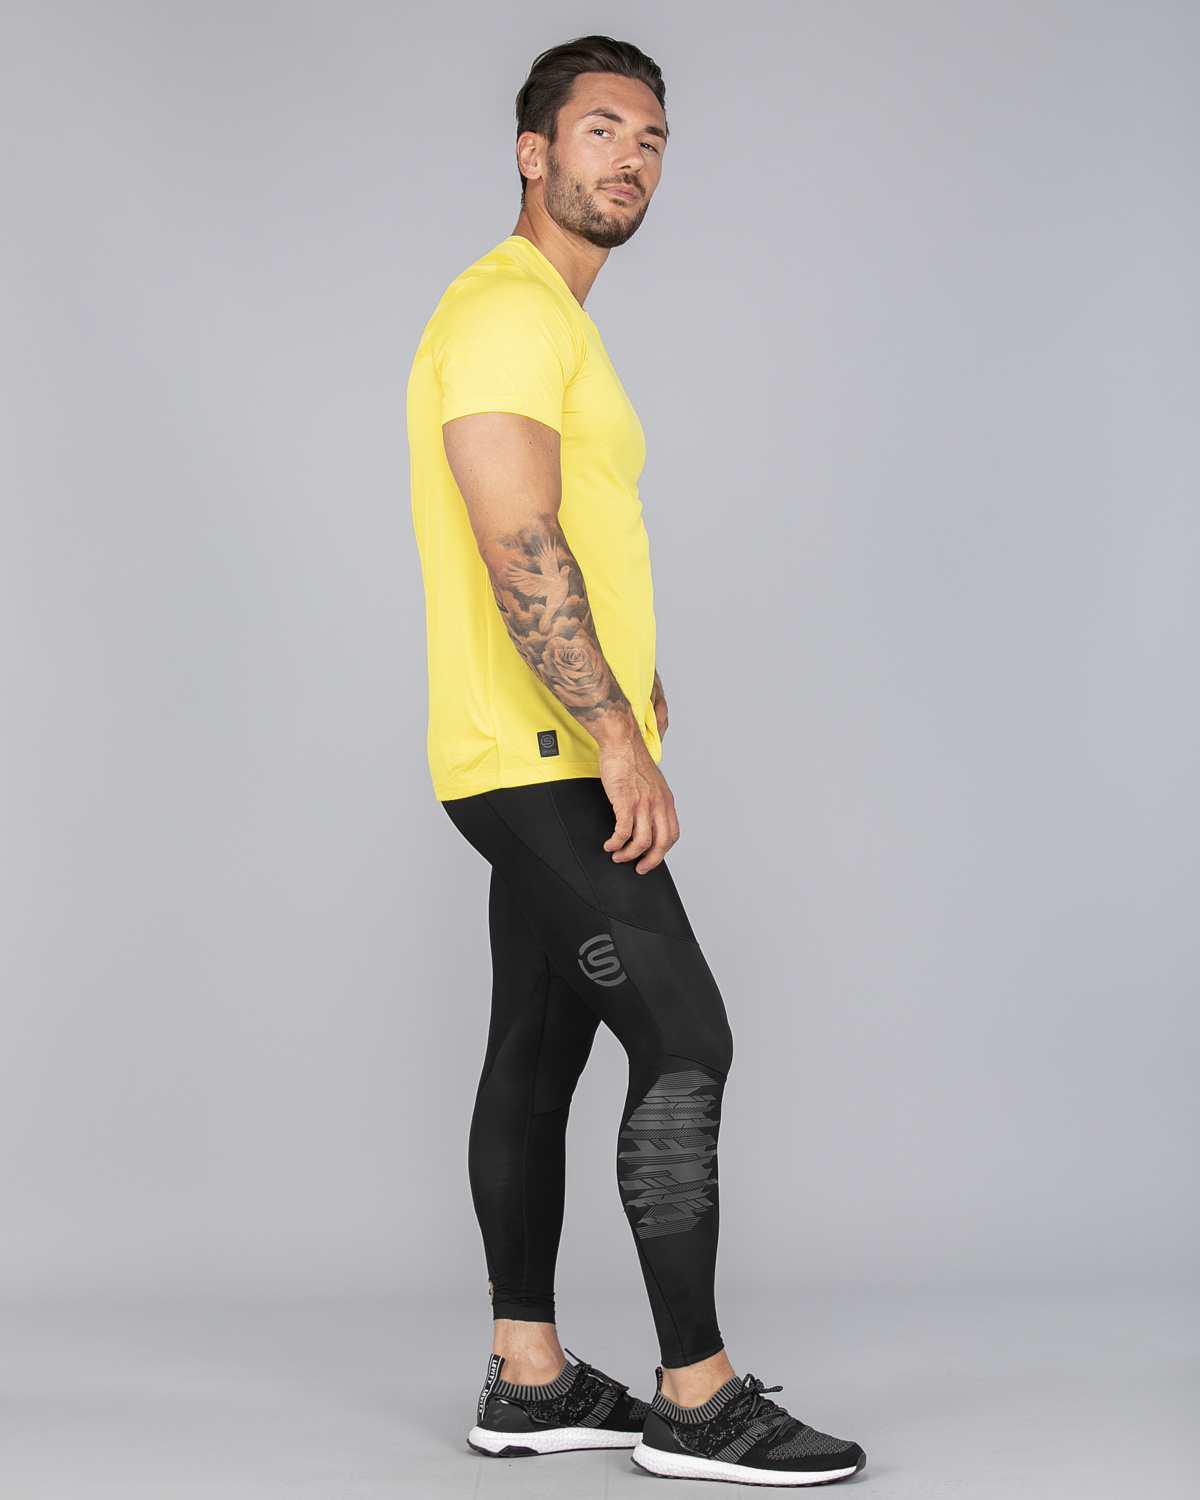 Skins Activewear Avatar Mens Round Neck Short Sleeve Tee CitronMarle (7)